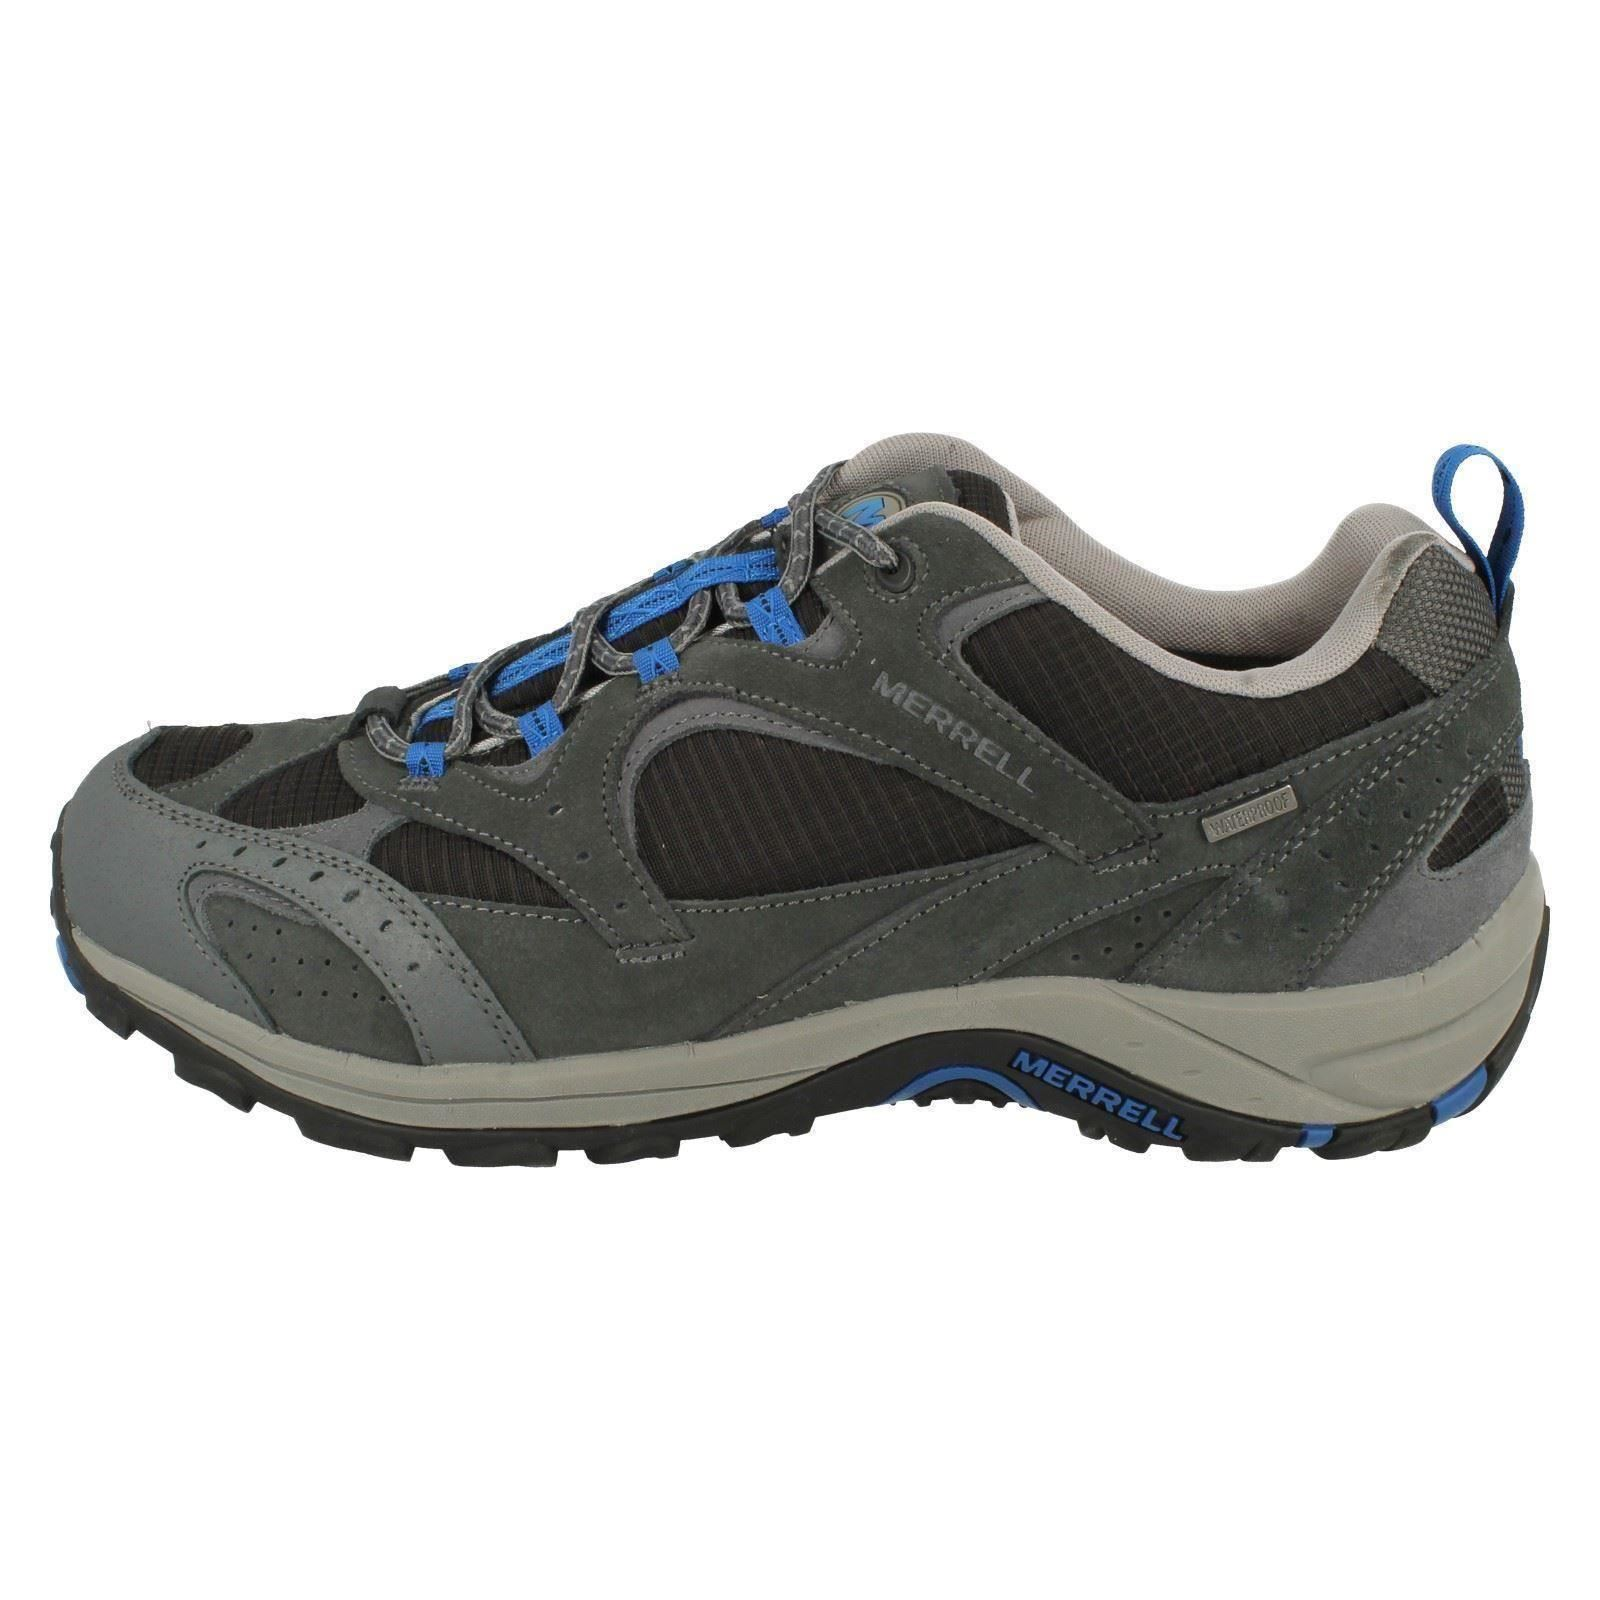 Mens Merrell Casual Lace Vent Up Walking Shoes 'Nova Vent Lace Waterproof' 69a975